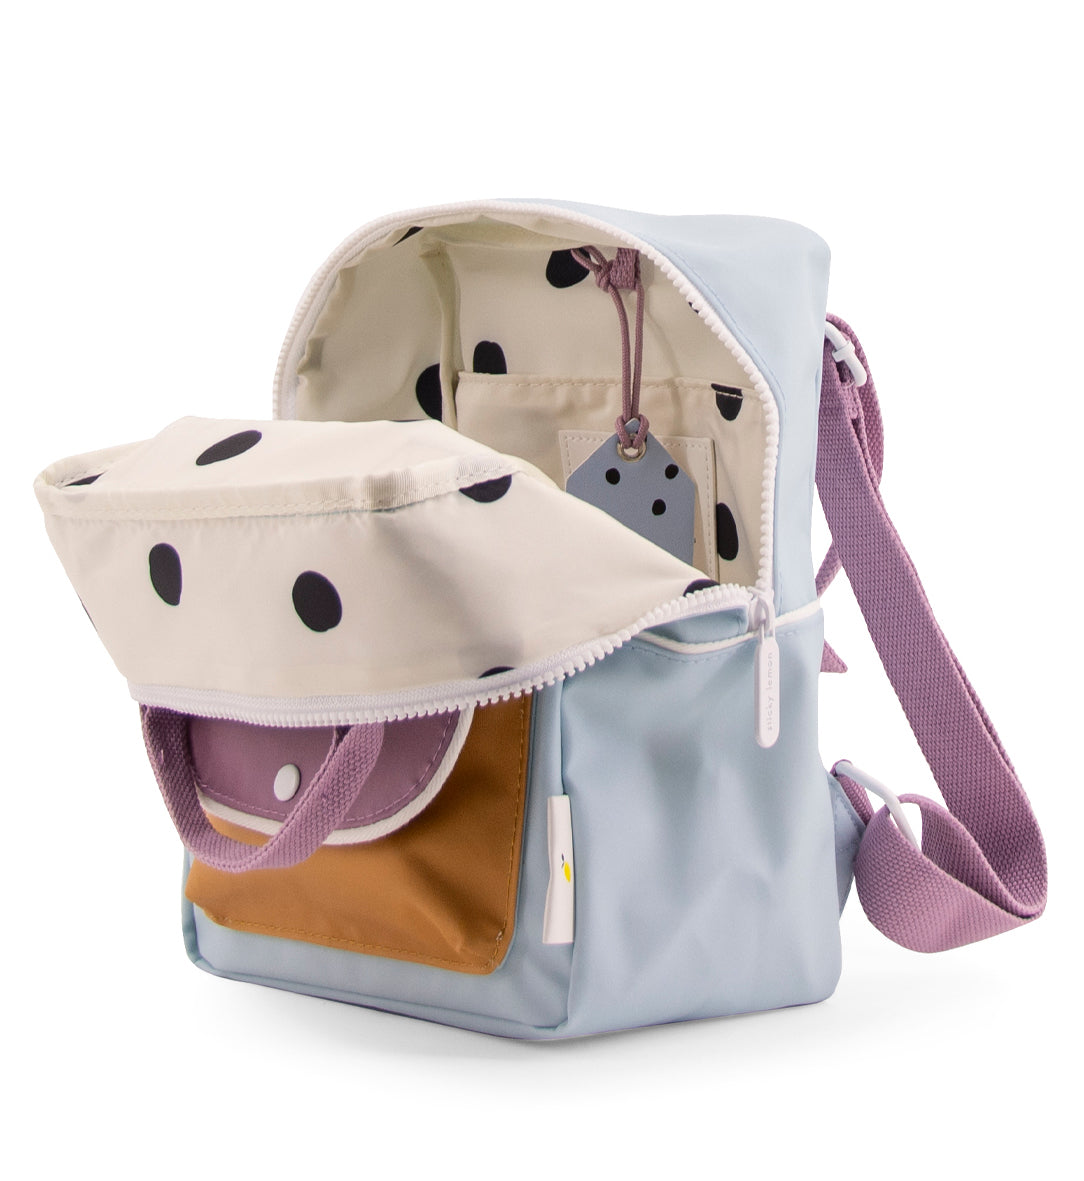 Backpack small  wanderer sky blue + pirate purple + caramel fudge -Sticky Lemon